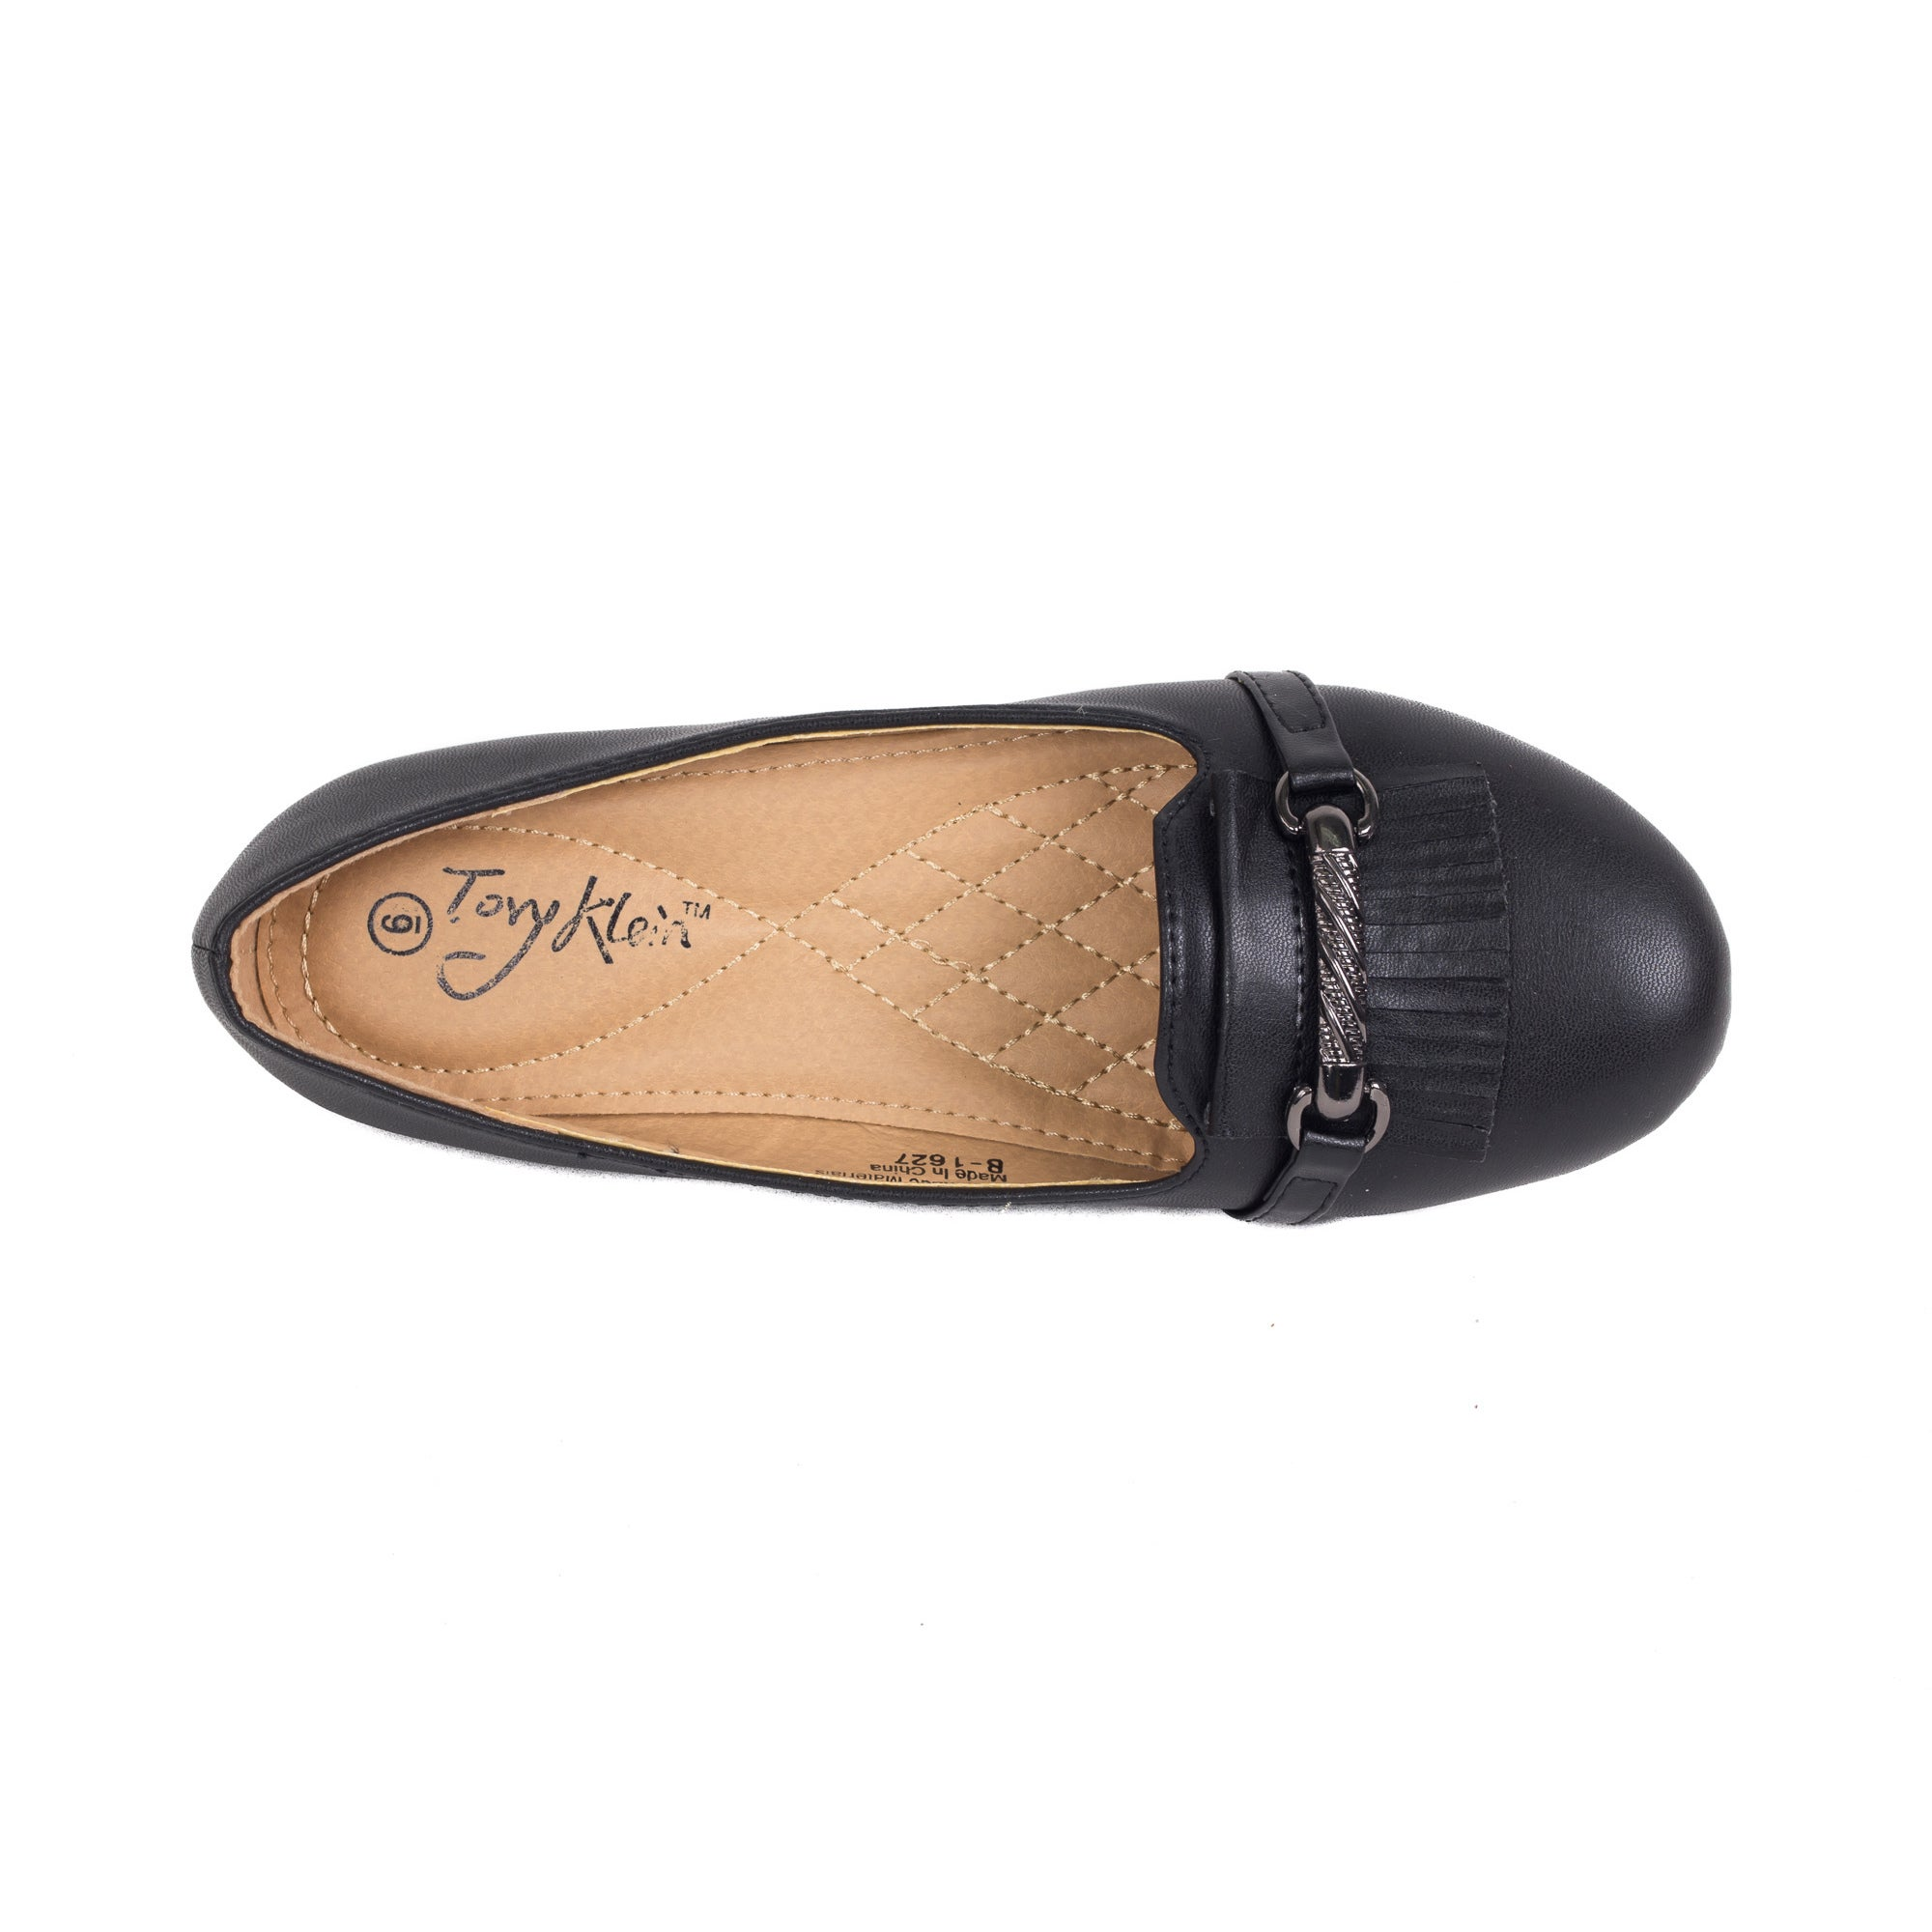 519f89c46e7 Shop Women Buckled Mocassin-style Ballet Flats - Free Shipping On Orders  Over  45 - Overstock.com - 9260832